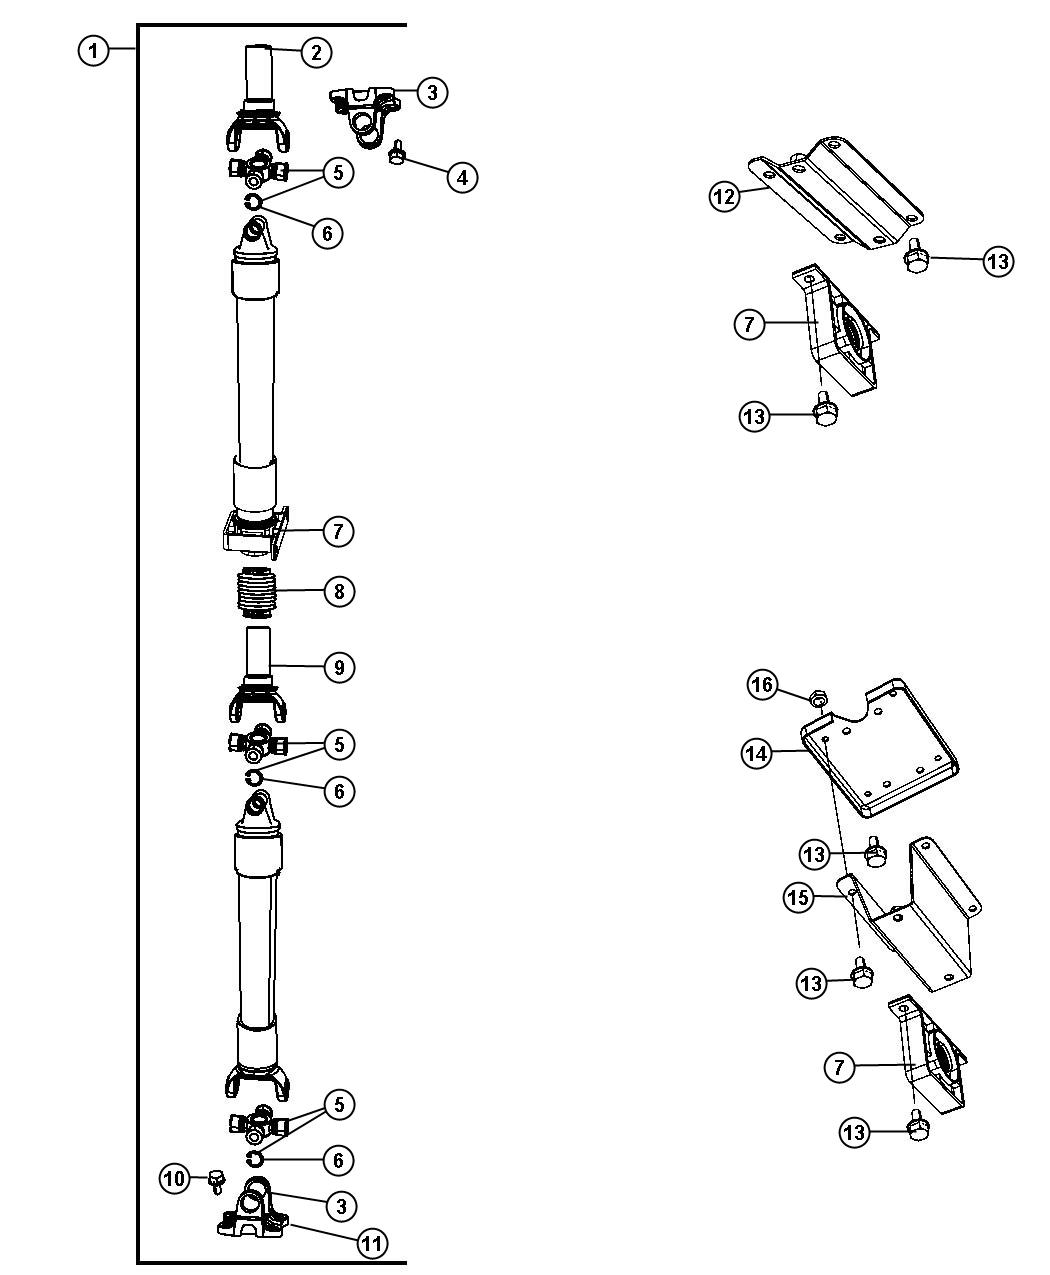 Wiring Diagram On Ford Five Hundred Interior Wiring Harness Diagram